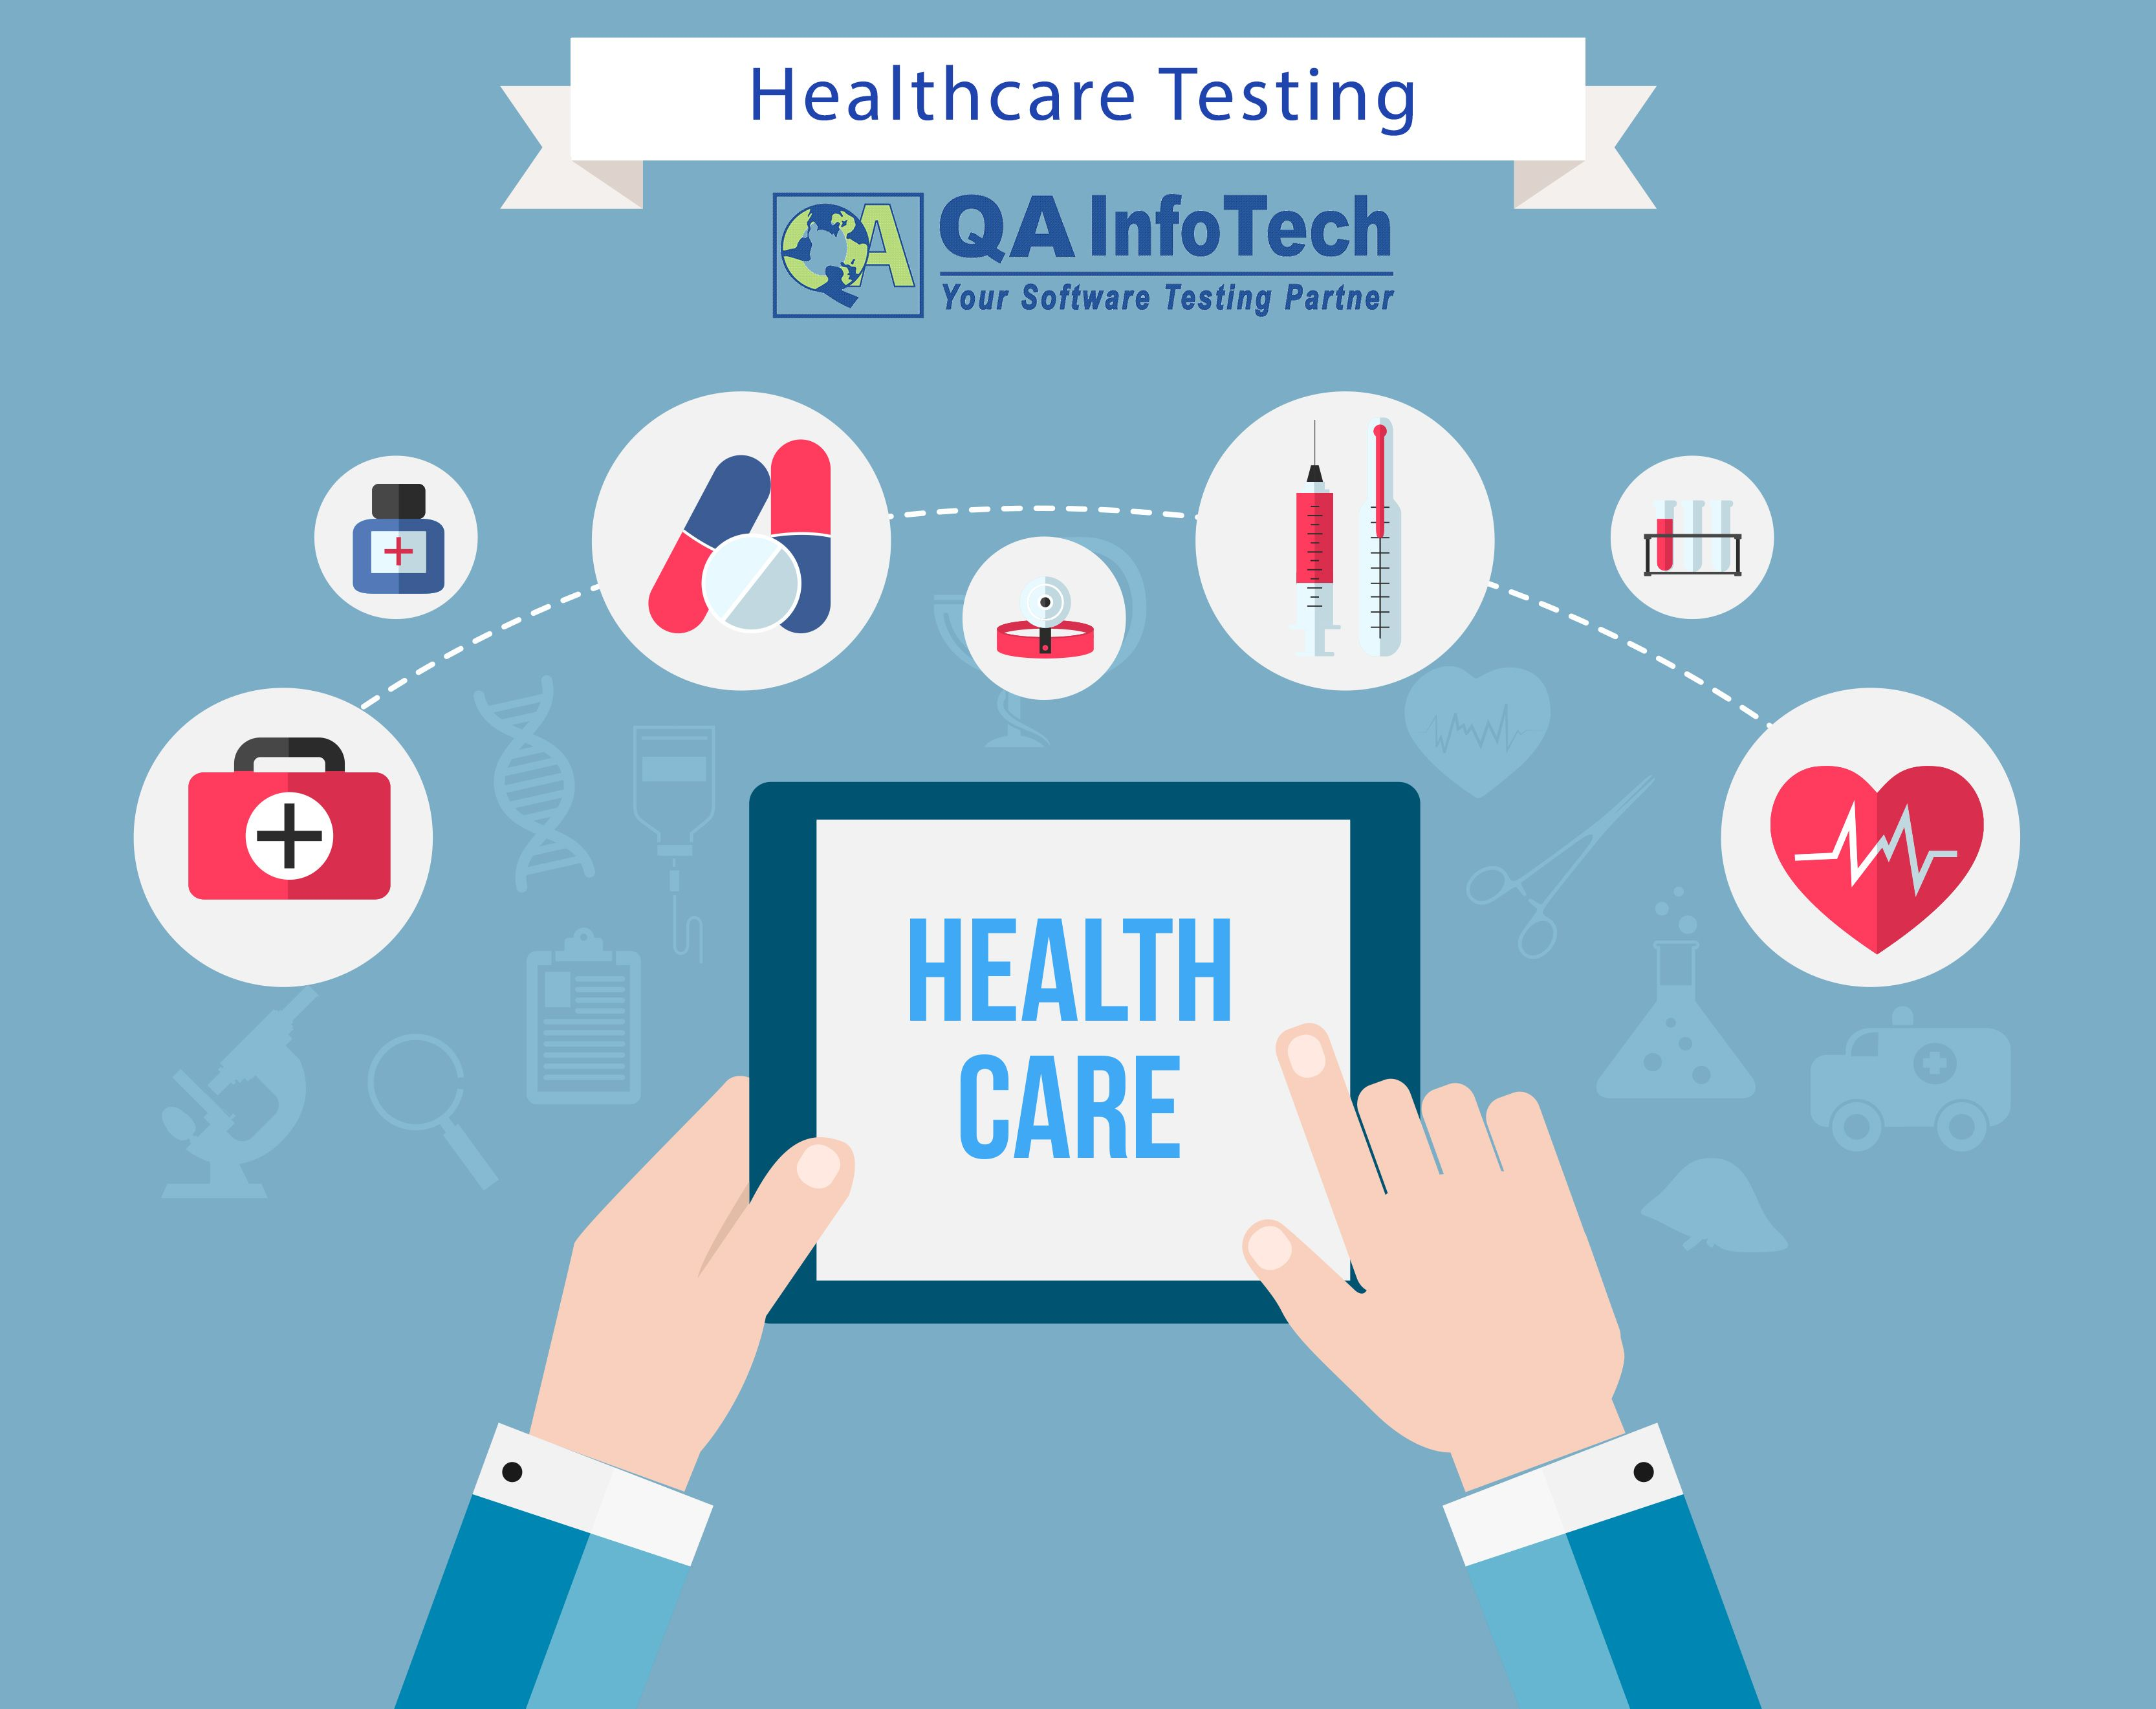 Untested Healthcare Apps Can Often Cause More Harm Than Good Given